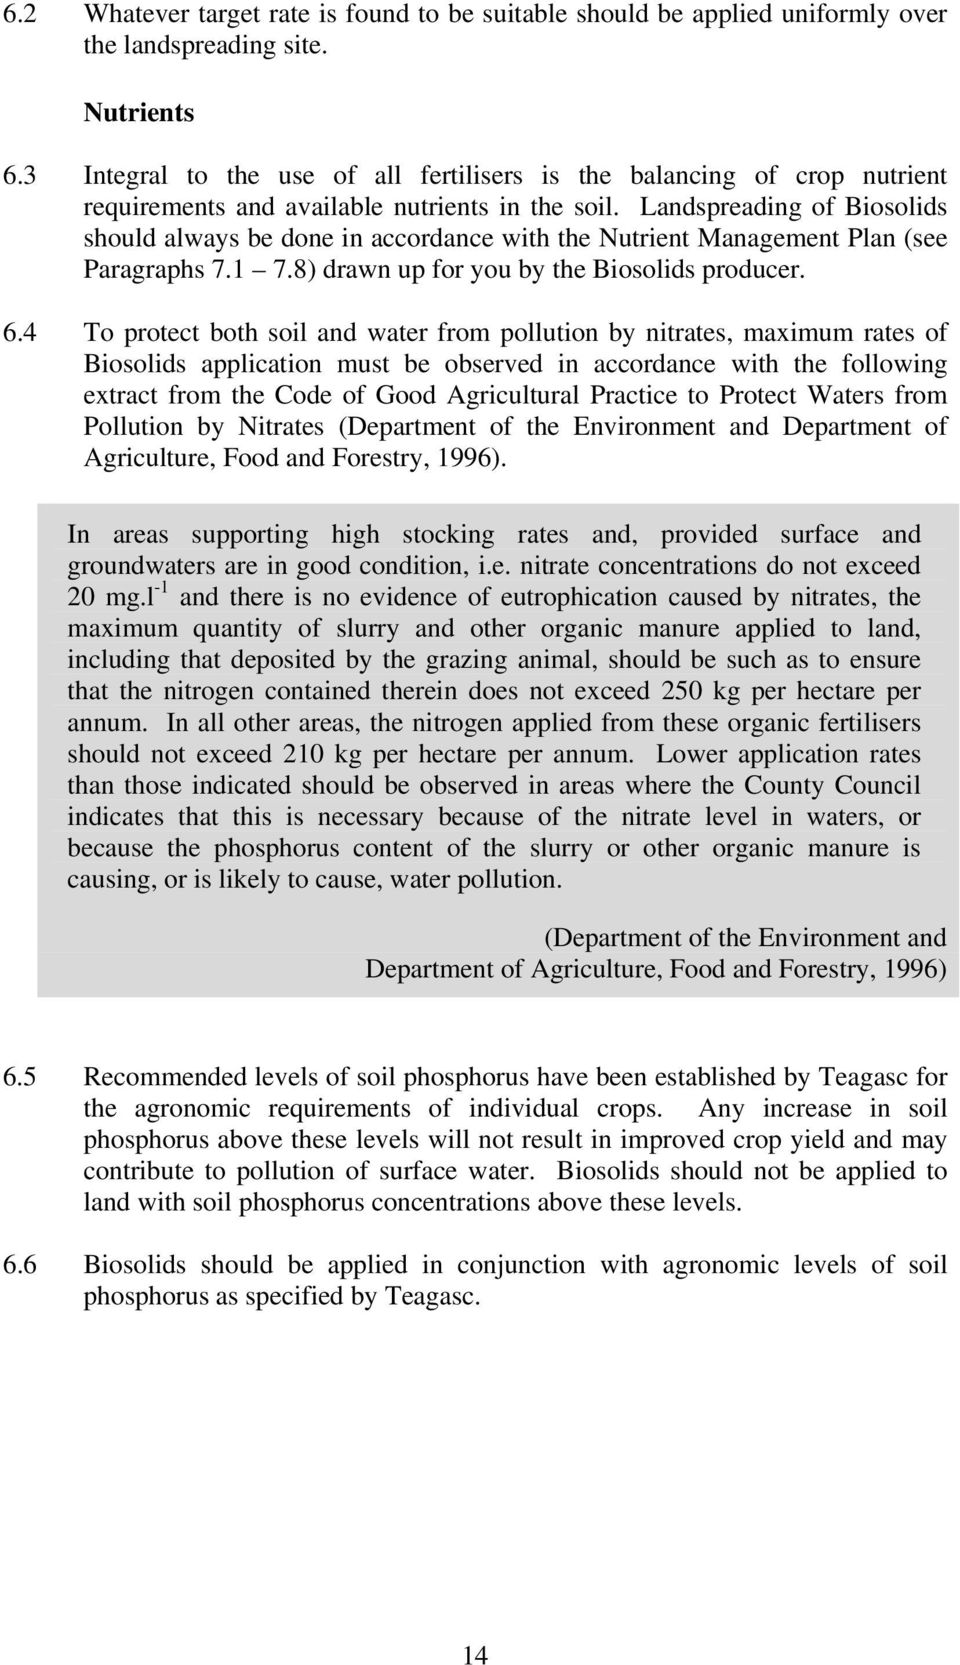 Landspreading of Biosolids should always be done in accordance with the Nutrient Management Plan (see Paragraphs 7.1 7.8) drawn up for you by the Biosolids producer. 6.